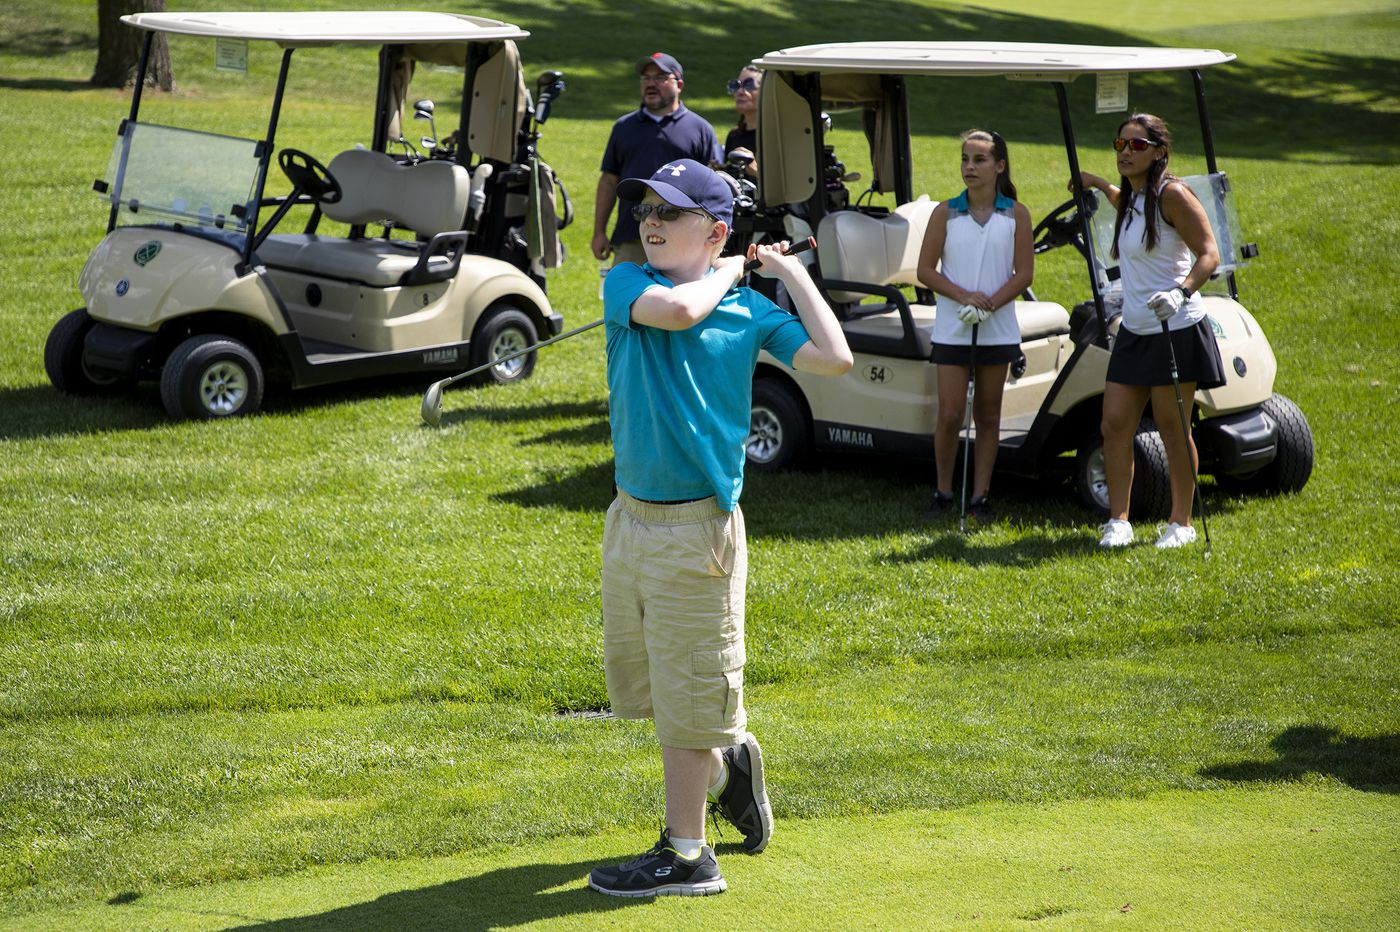 For these visually impaired golfers, impressive scores are par for the course